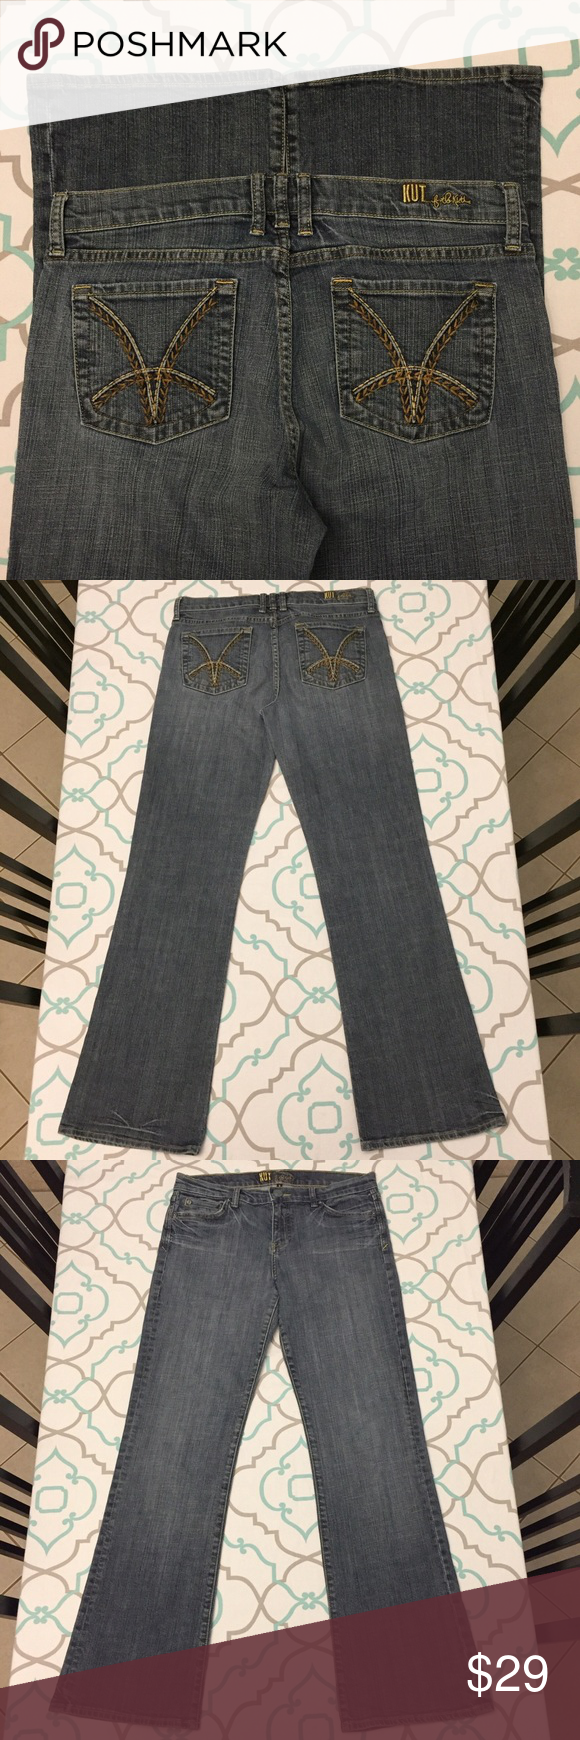 💘💙👖Kut From the Kloth Jeans 7/8 28 Boot👖💙💘 💘💙👖Kut from the Kloth. Beautiful Soft medium blue wash. Size 8 (7/29). EXcellent Used Condition. Ask me any questions!👖💙💘 Kut from the Kloth Jeans Boot Cut